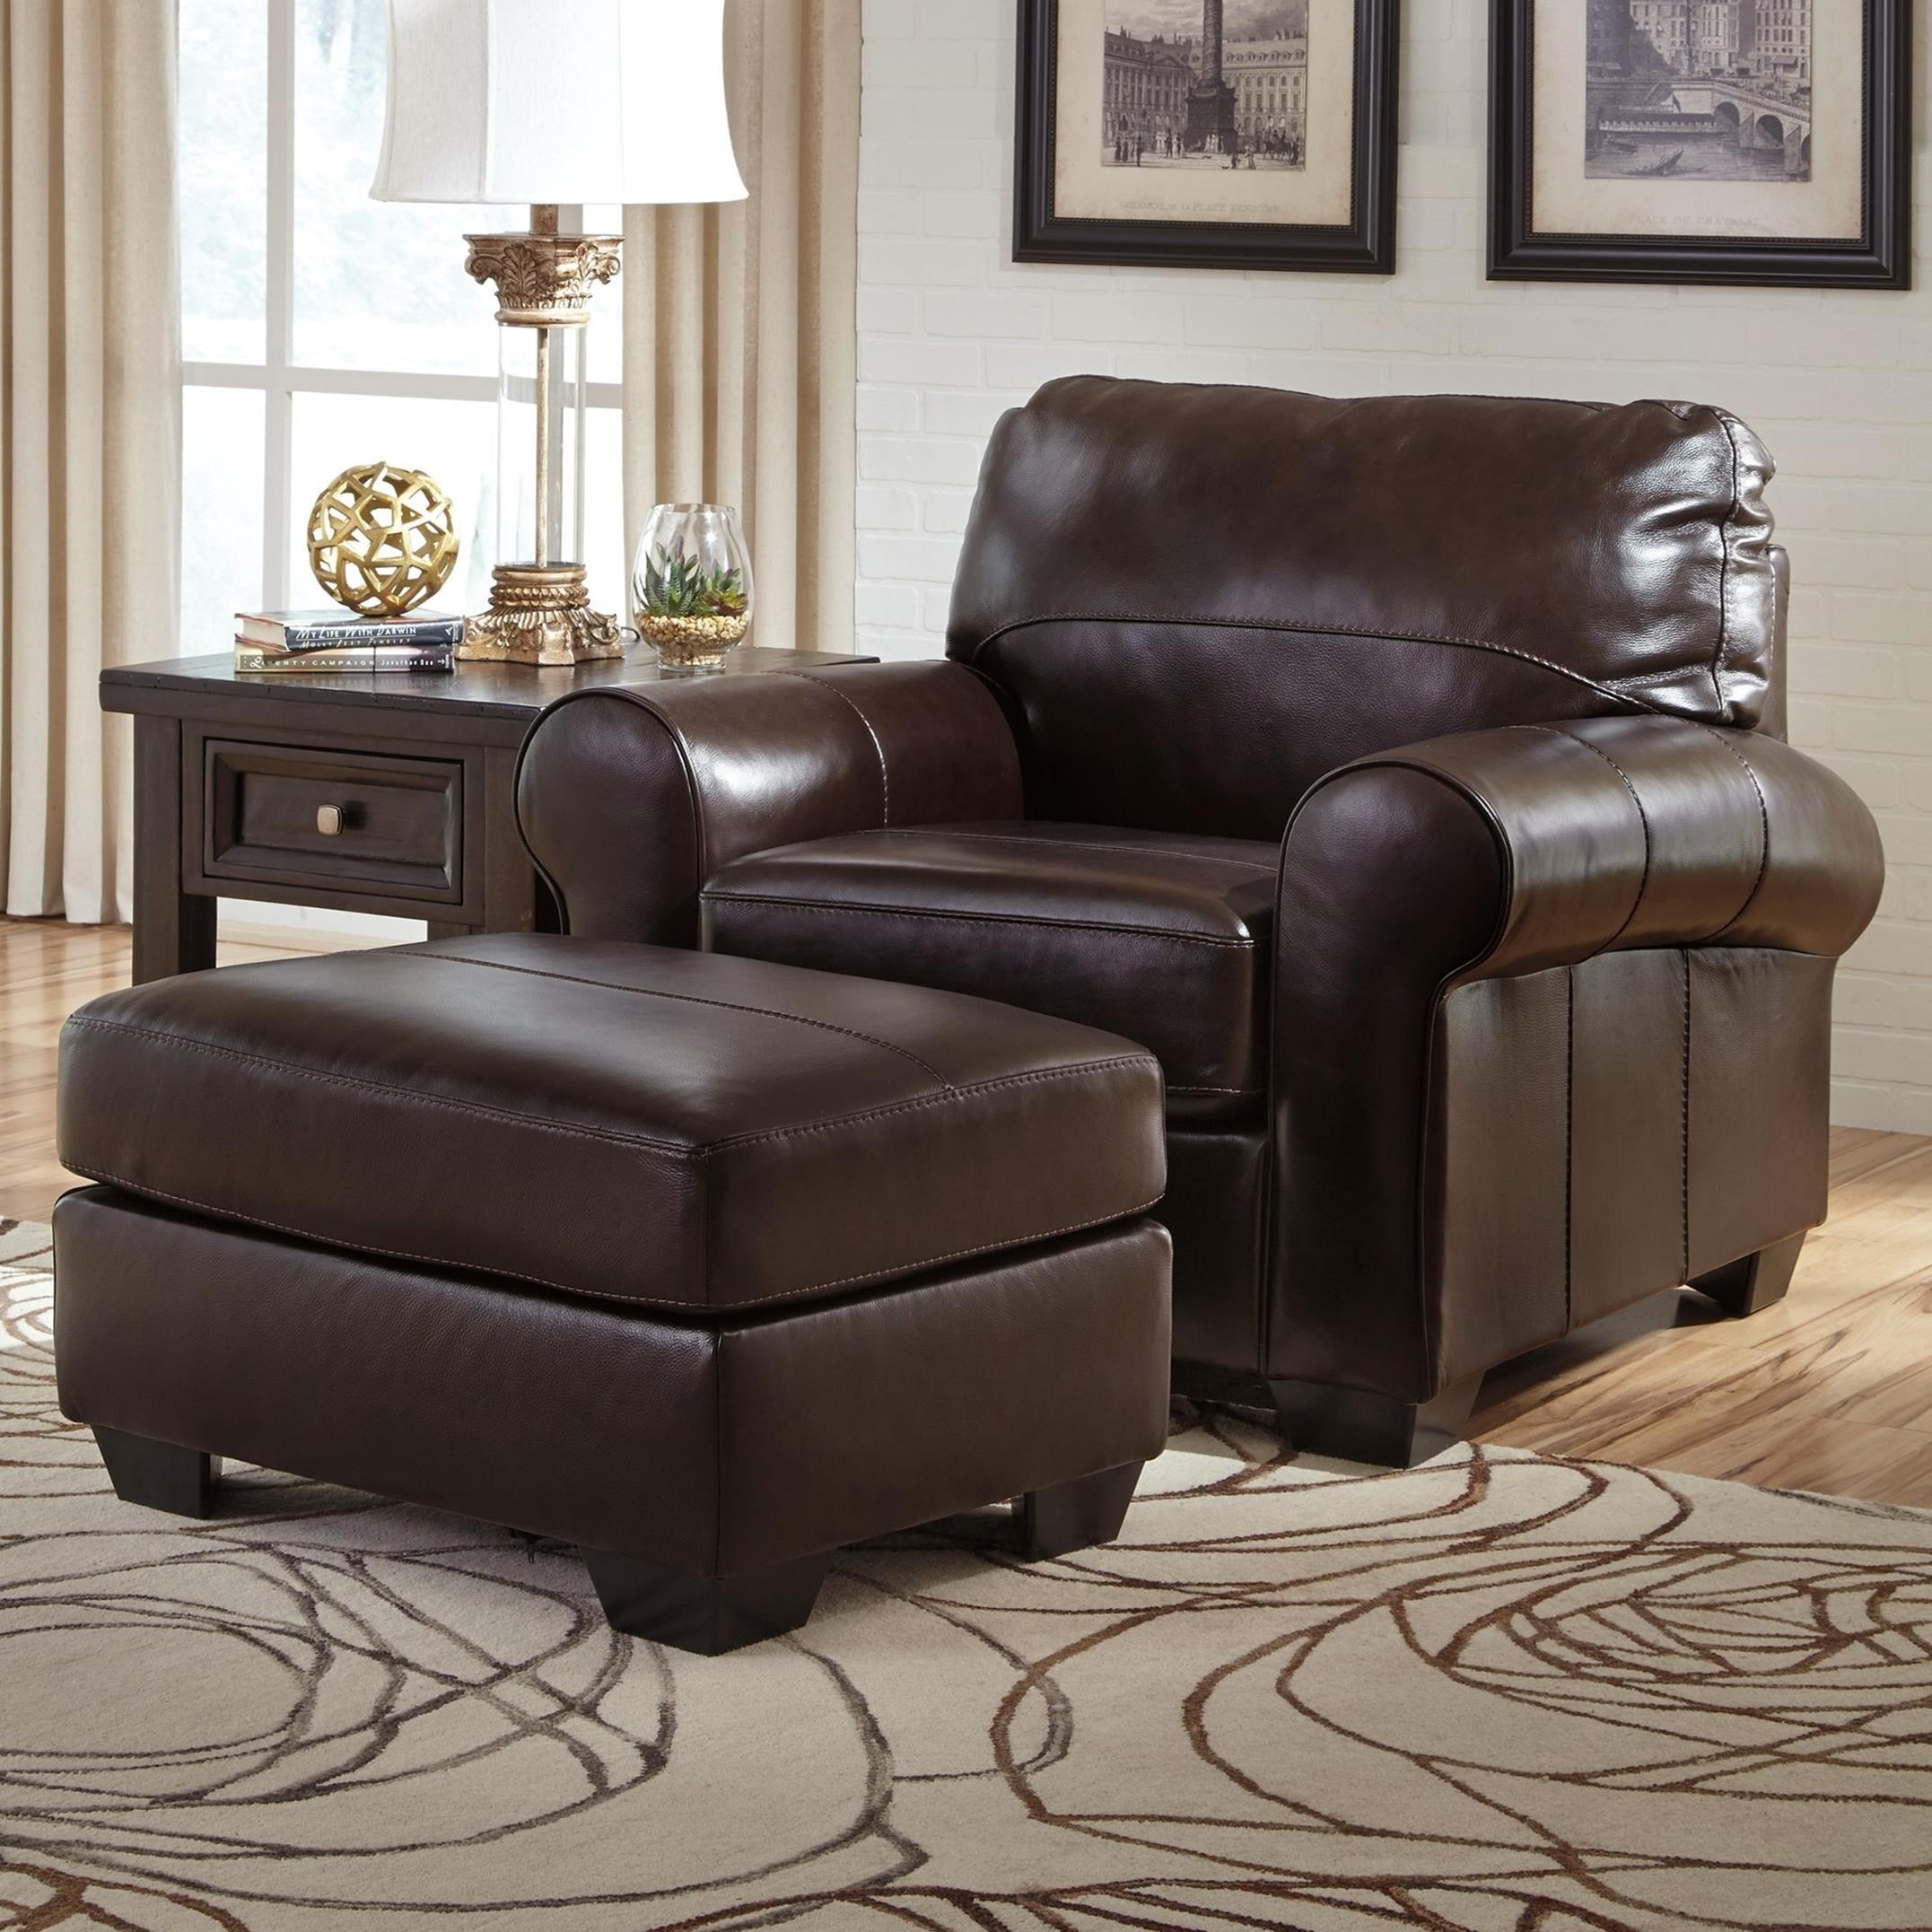 Signature Design By Ashley Canterelli Leather Match Chair Ottoman Furniture And